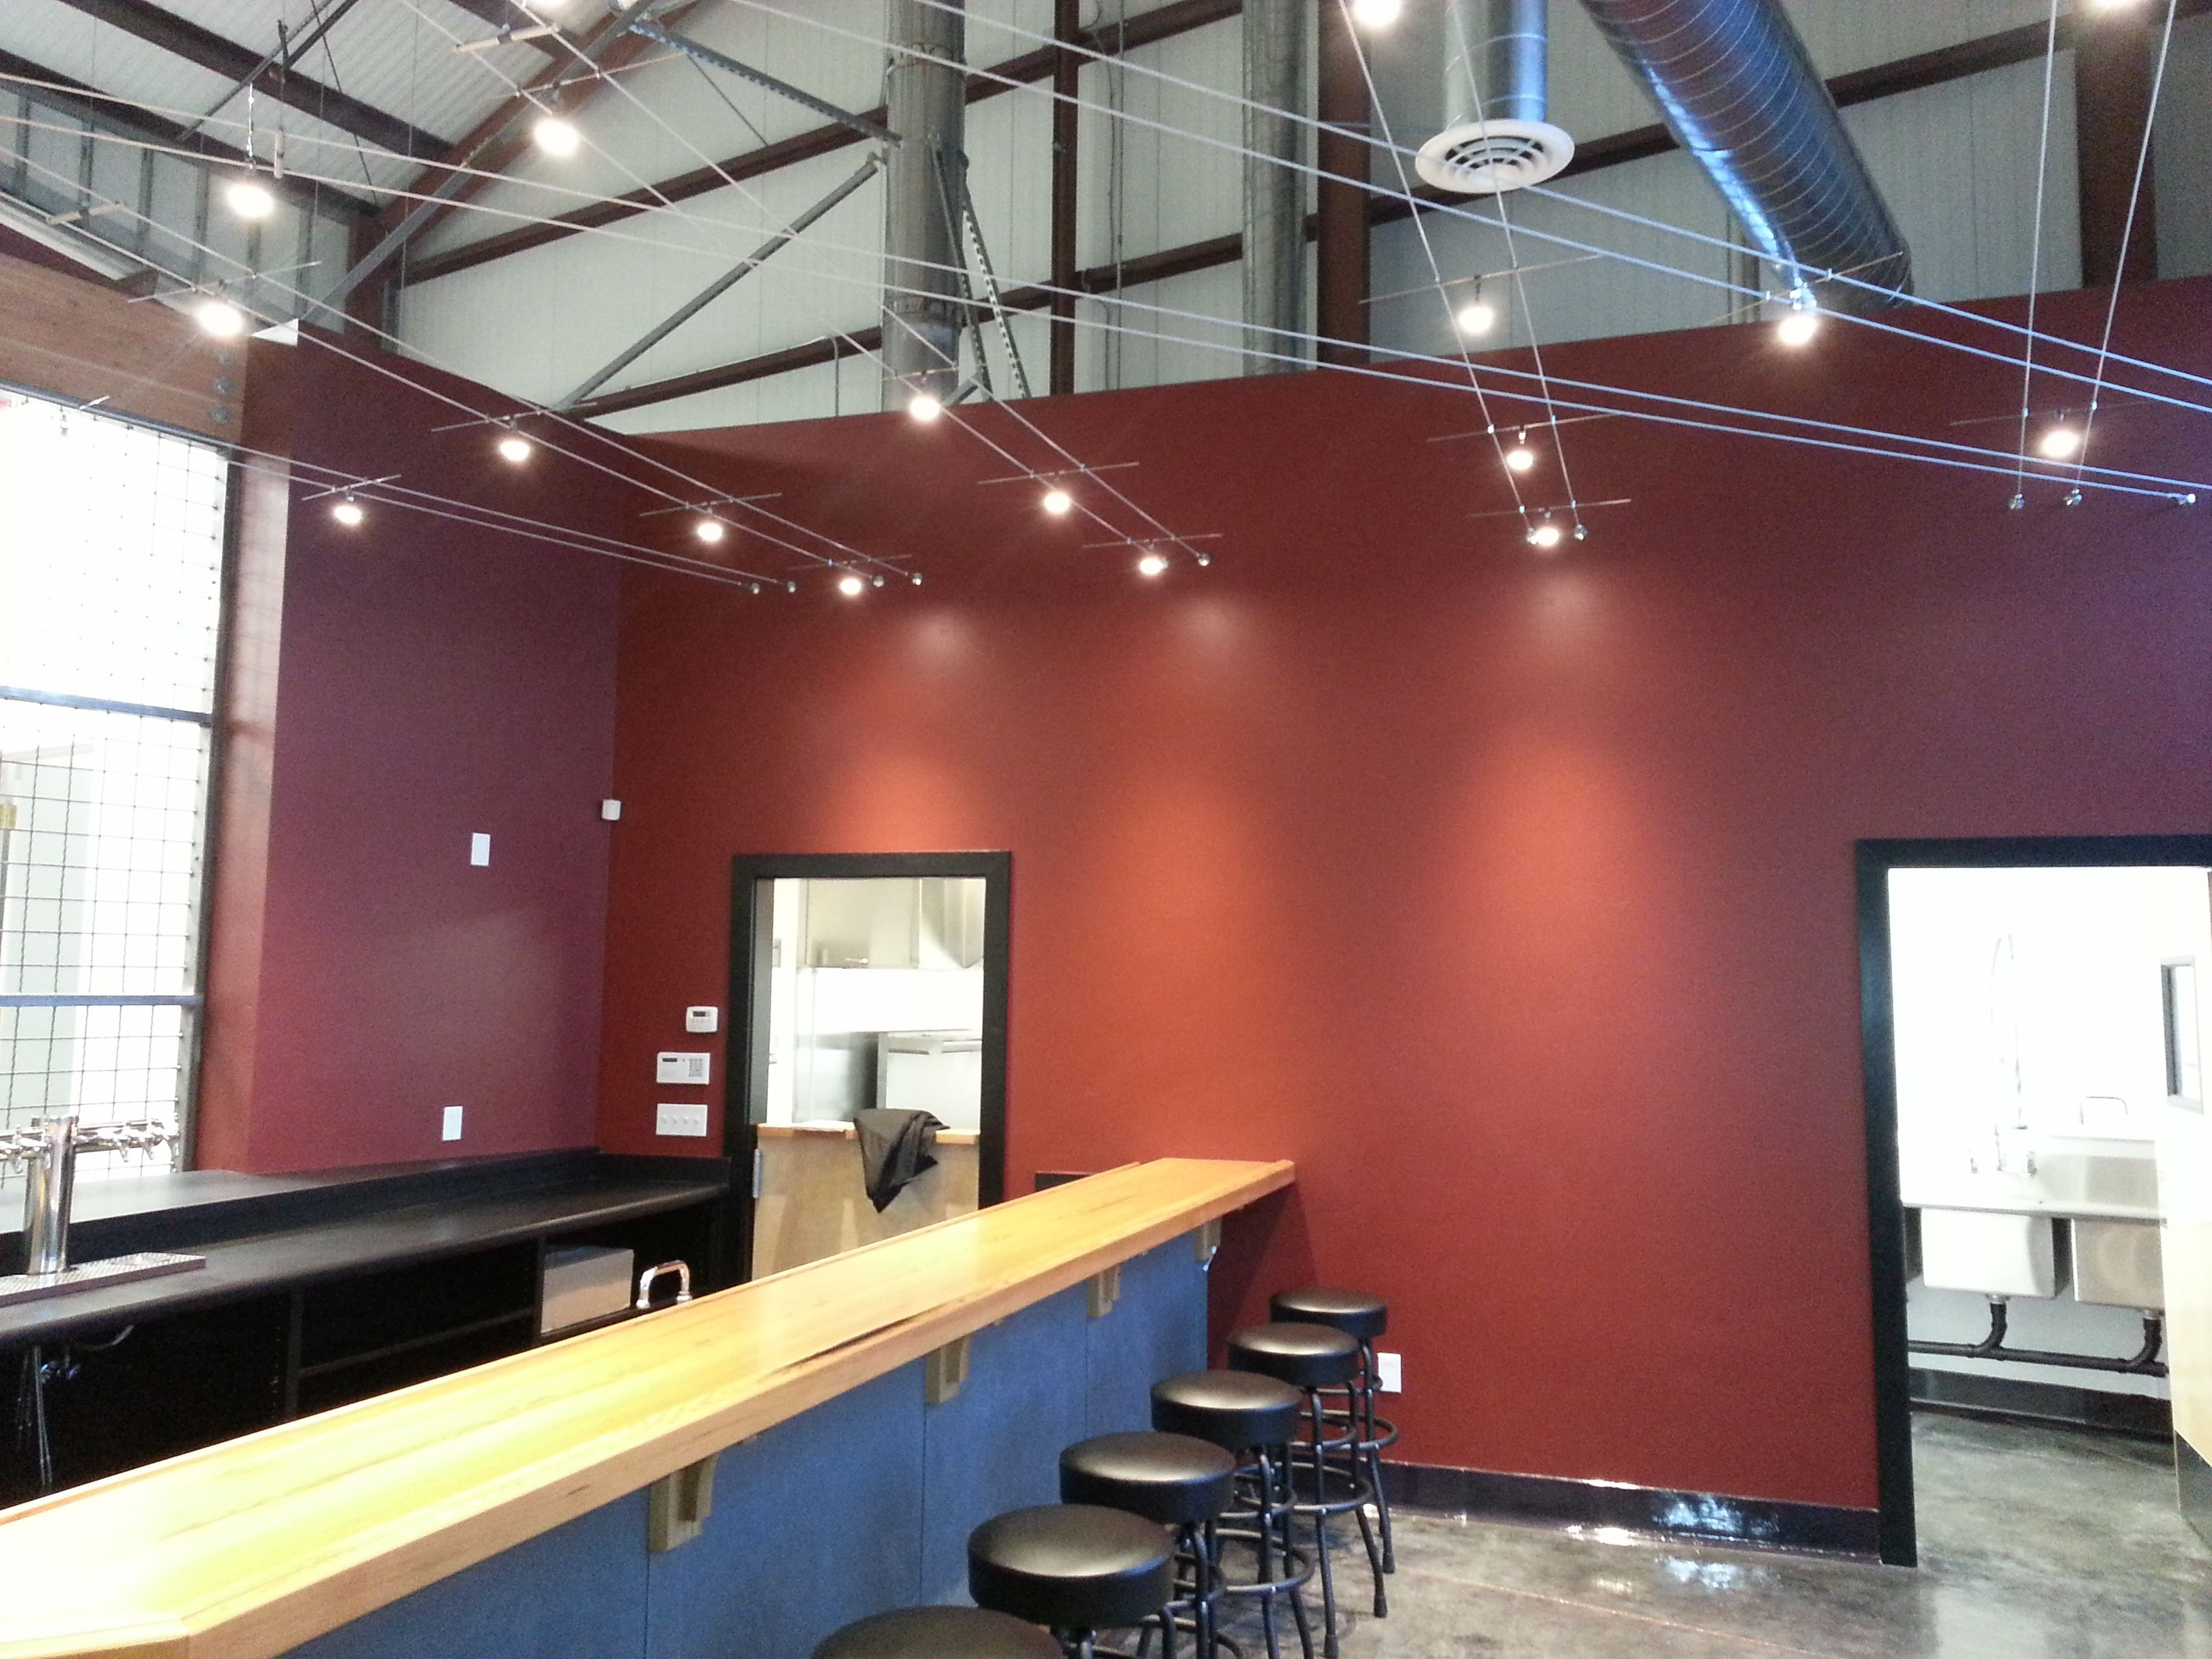 Discretion Tap Room Bar Stools Are Finally In And Led Lighting Has Been Installed Tap Room Bar Stools Home Decor